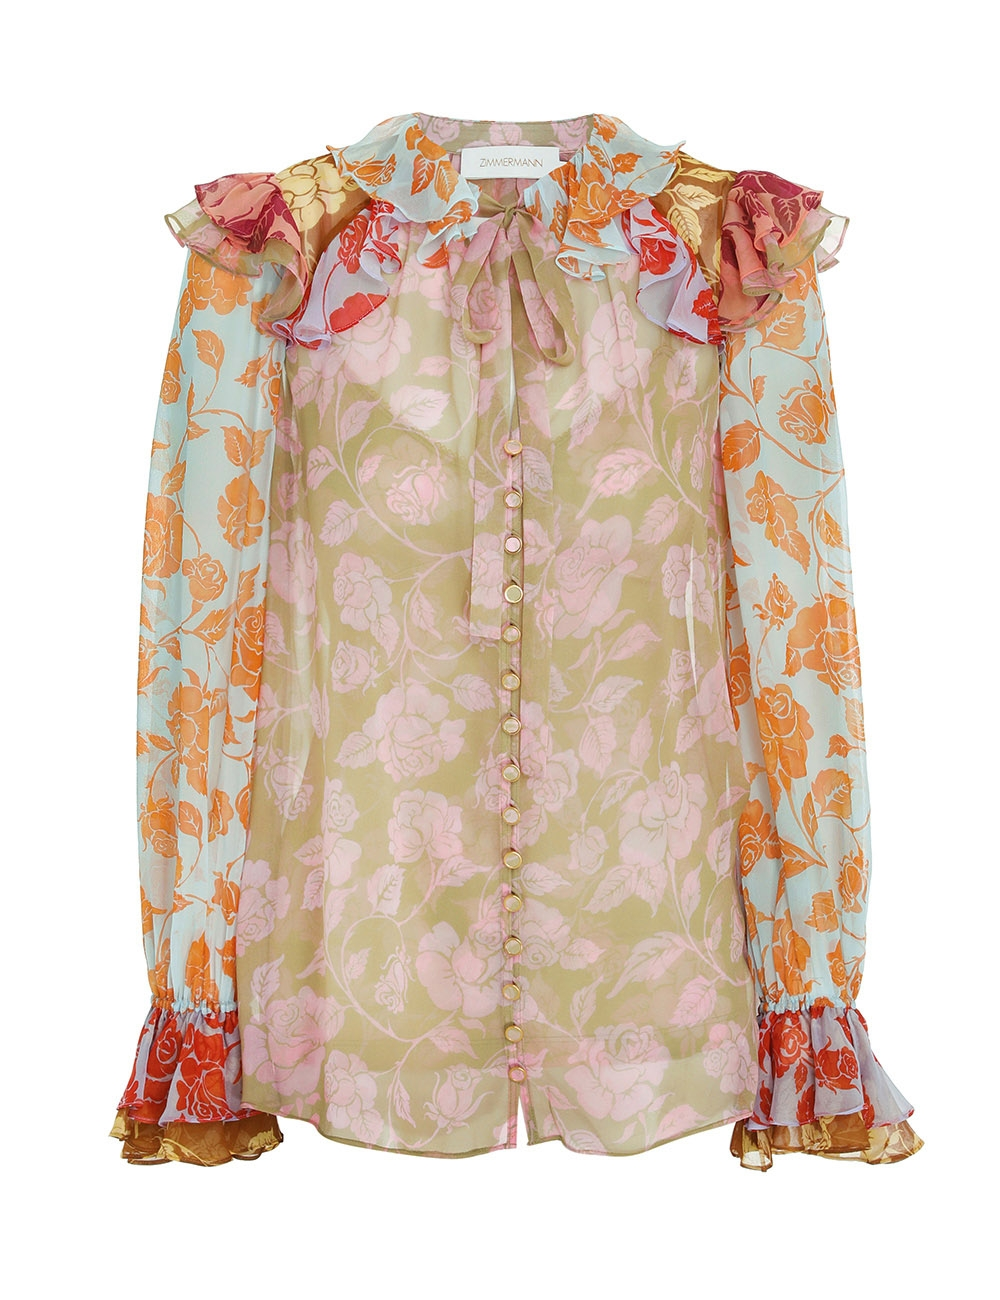 The Lovestruck Ruffle Shirt